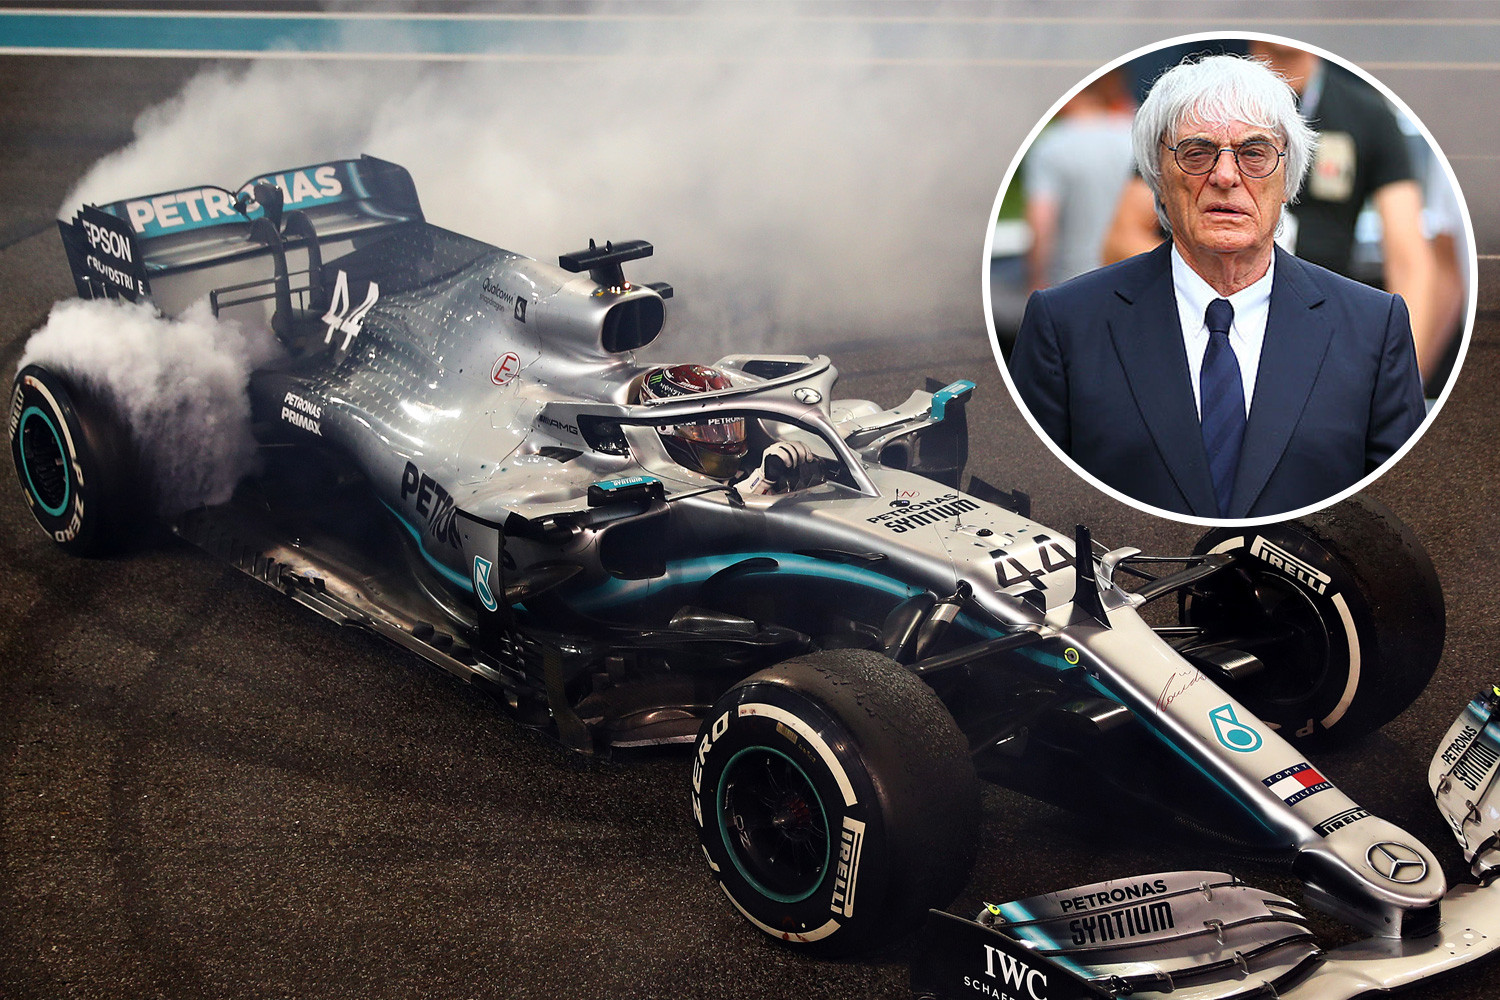 Former F1 supremo Bernie Ecclestone has revealed he wants the sport to be more entertaining